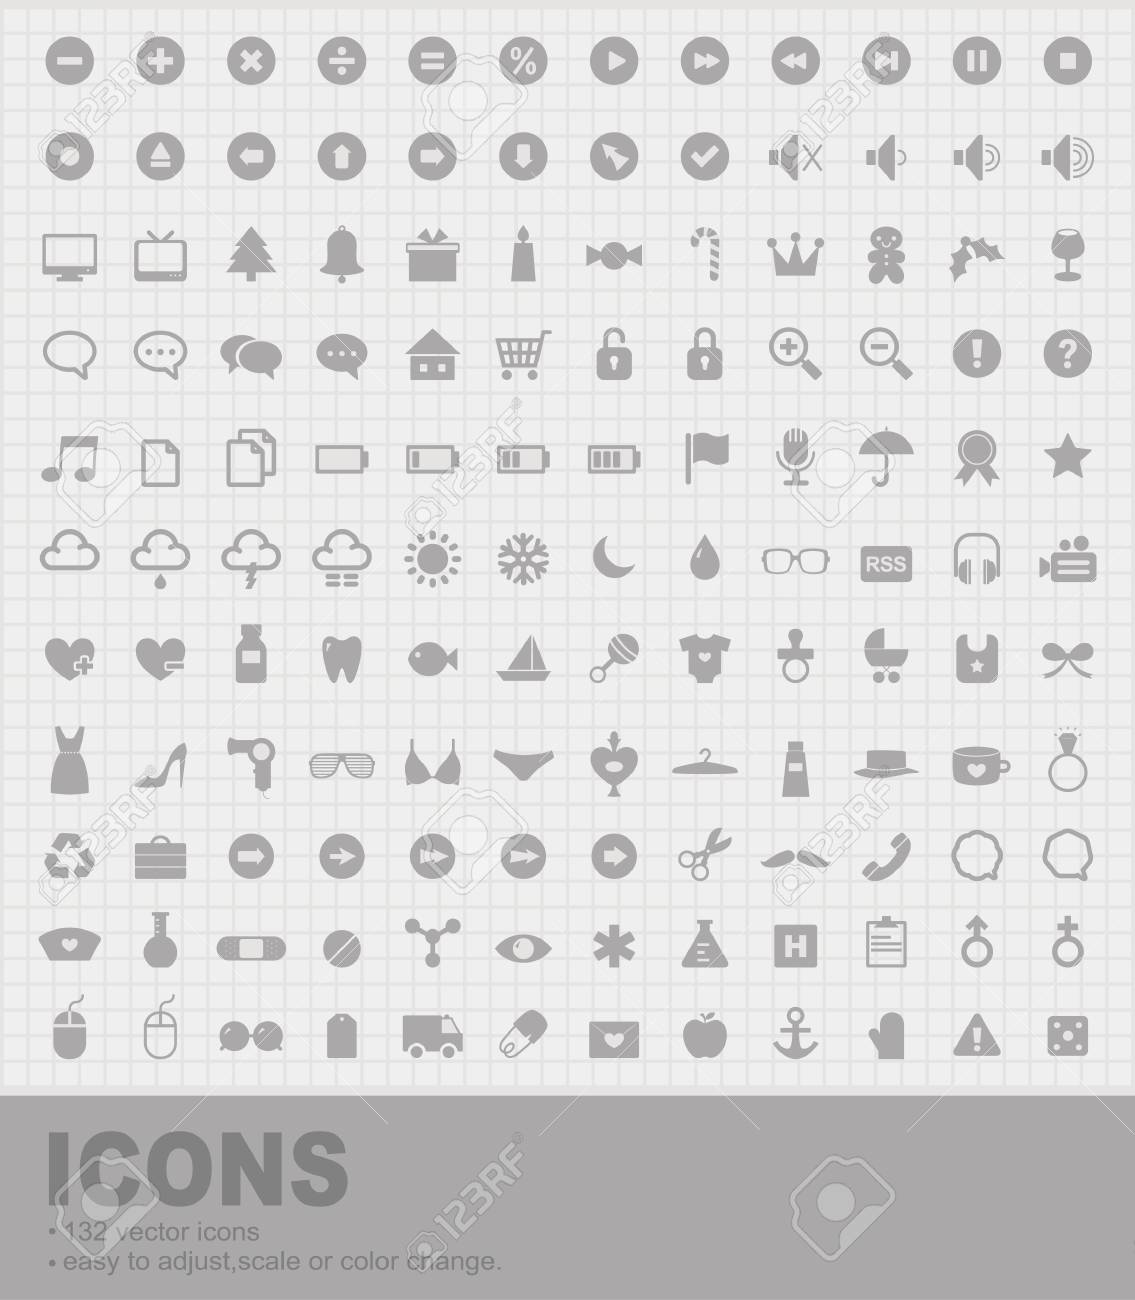 Pack of 132 Icons Stock Vector - 11218916